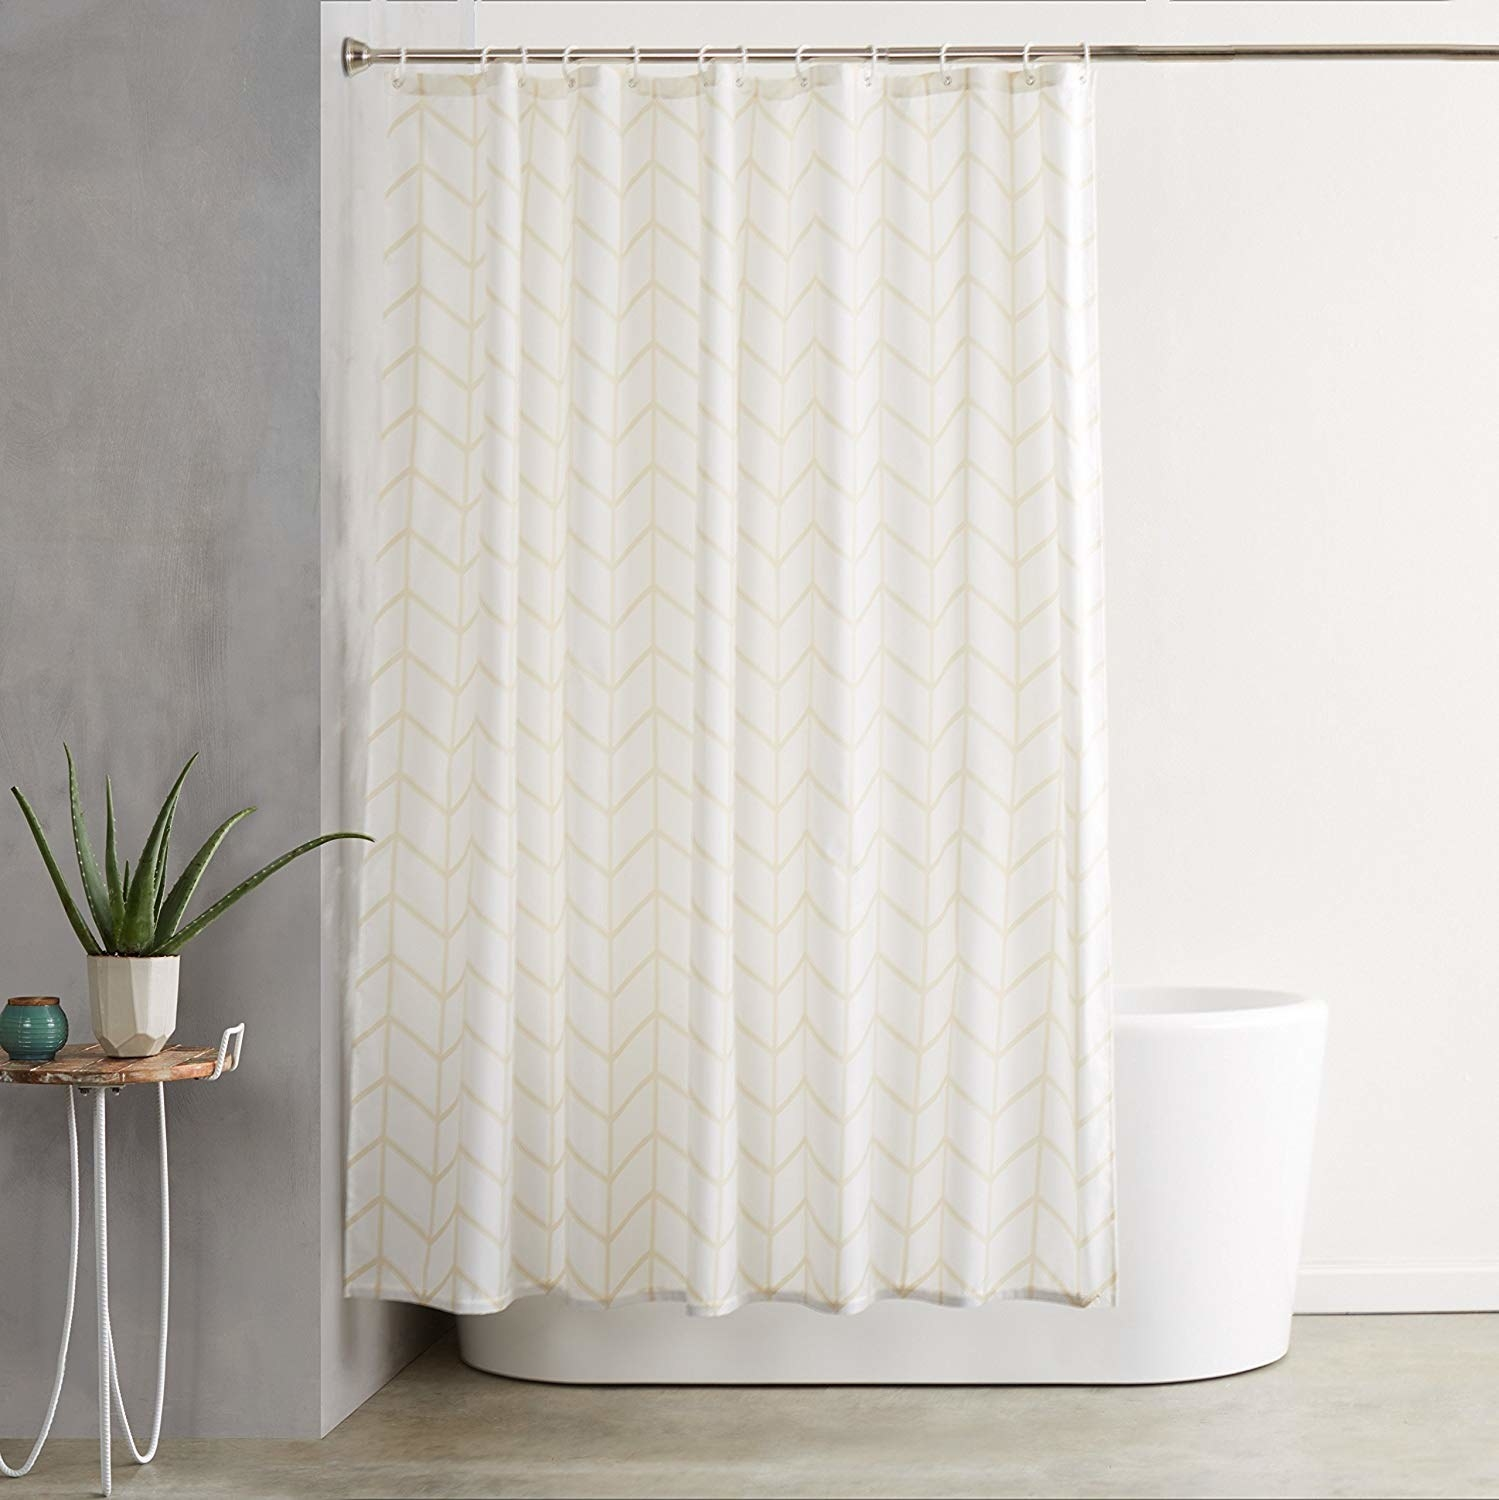 a white shower curtain with a yellow chevron design on it